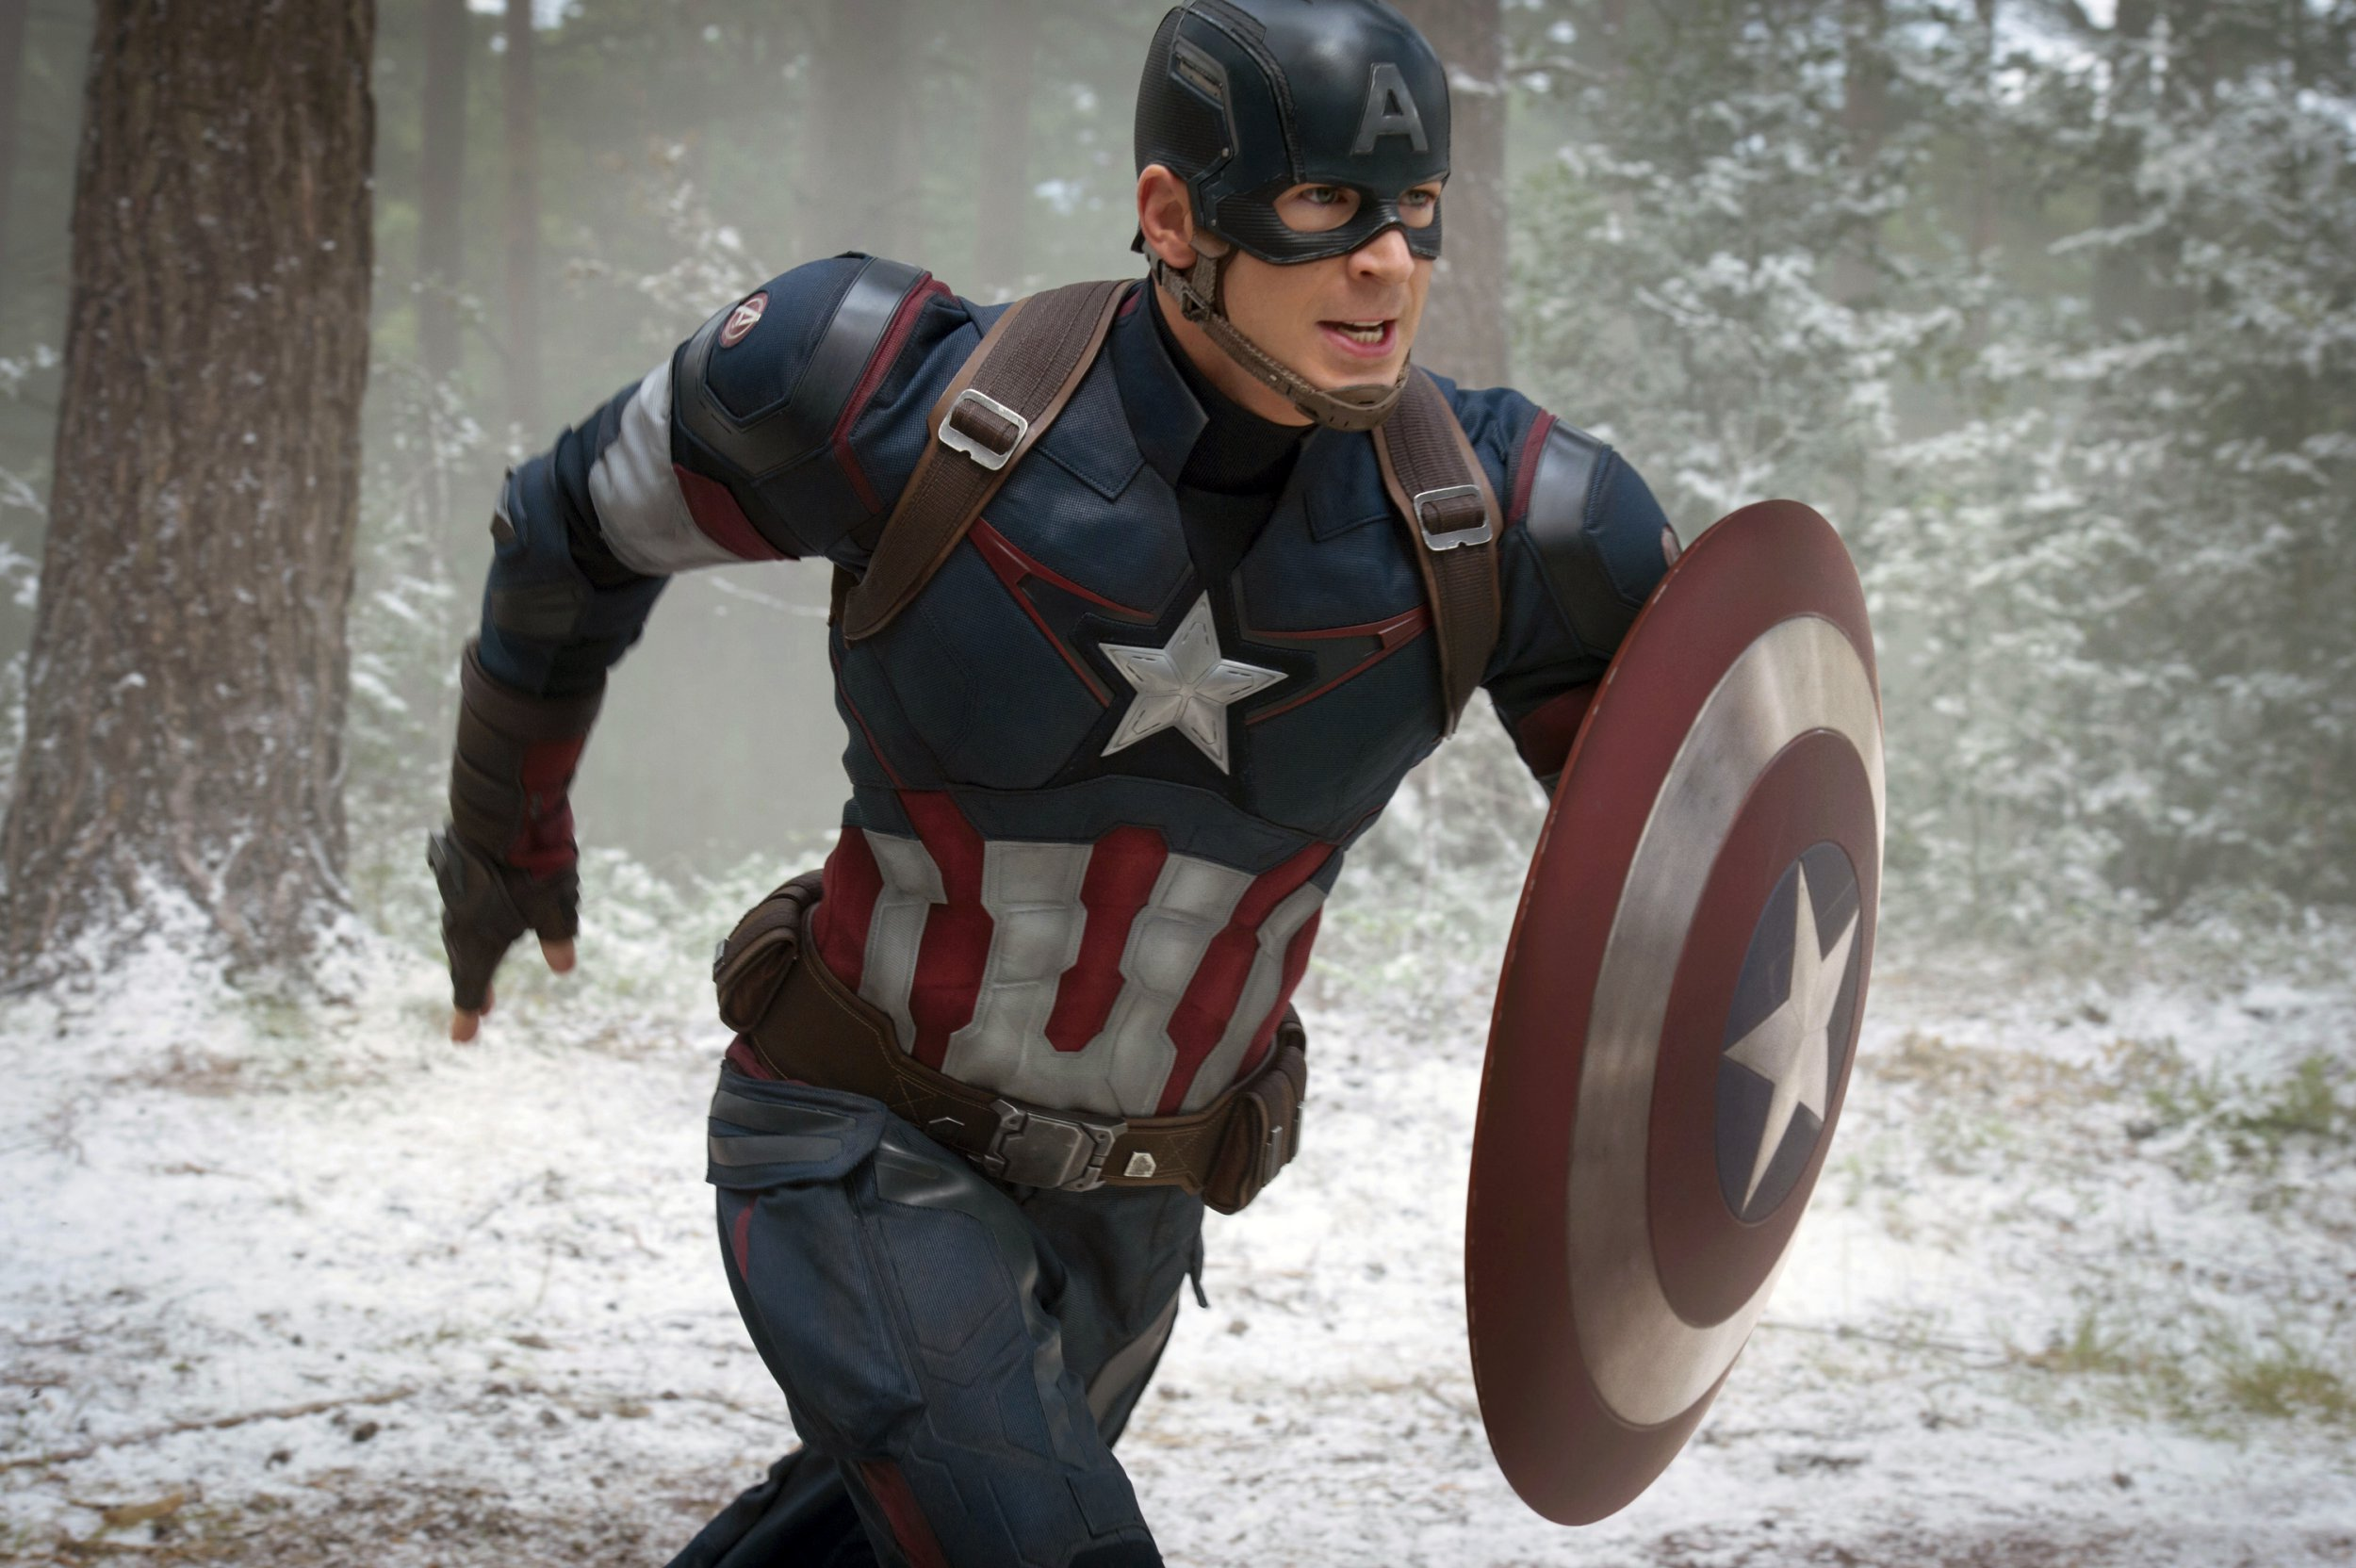 Avengers fan ready to kill off Captain America in Endgame theory